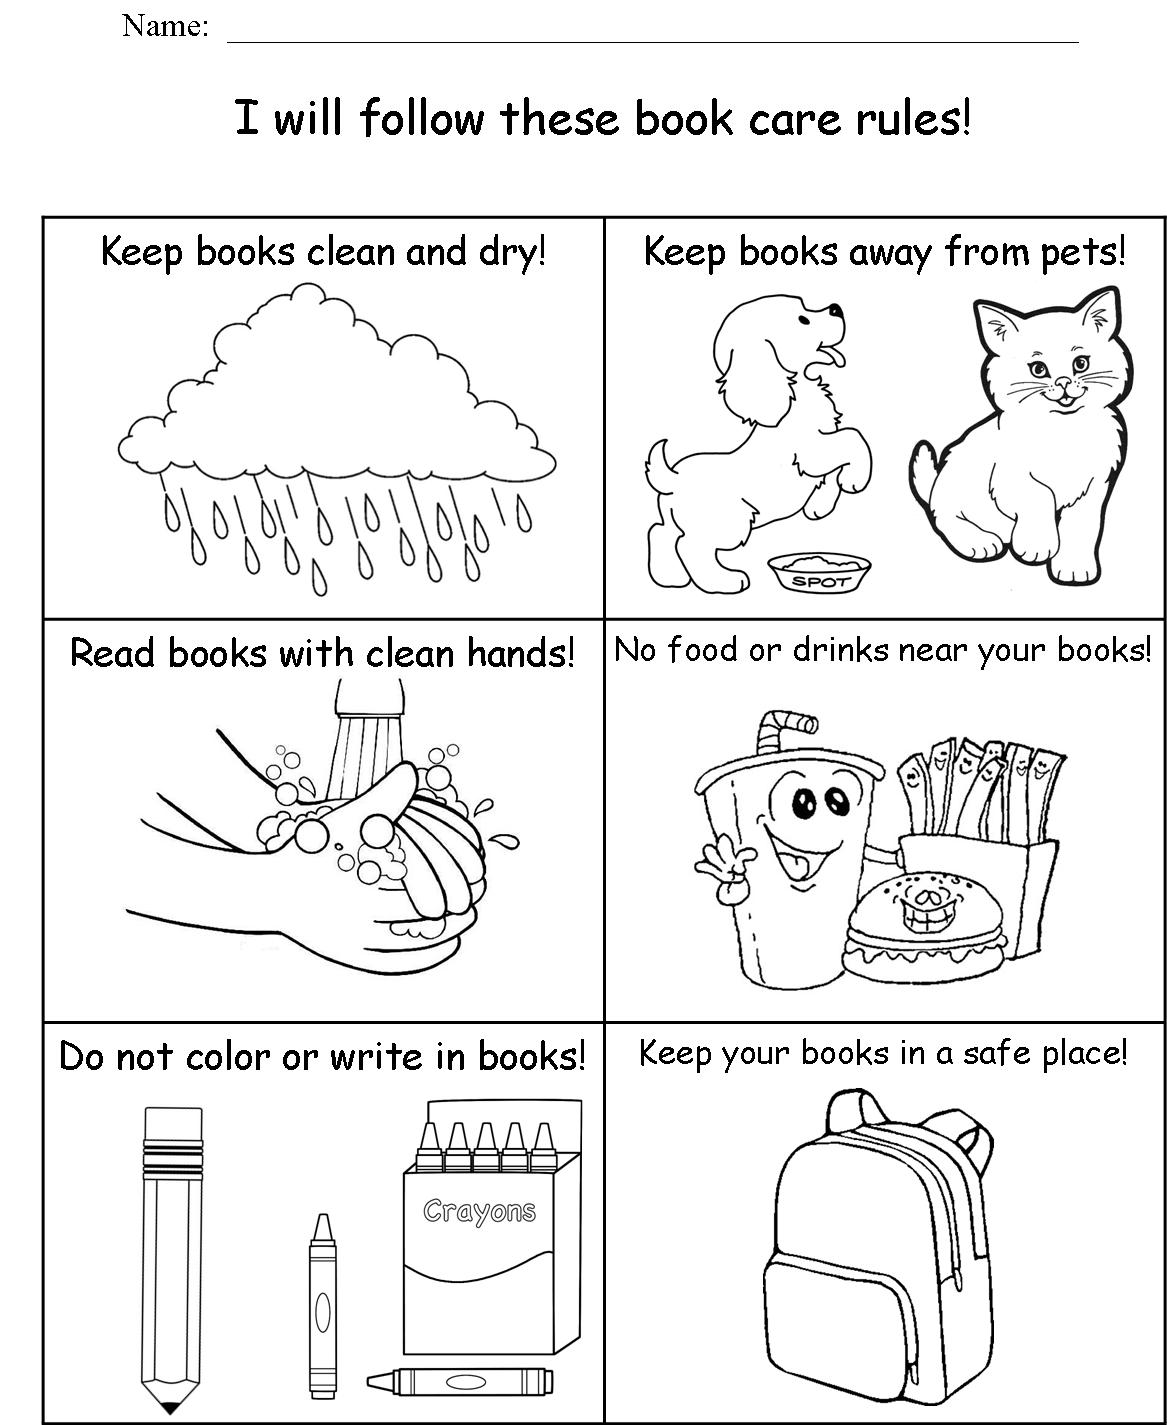 math worksheet : kindergarten  edgewood highland school library  rilink schools  : Parts Of A Book Kindergarten Worksheet